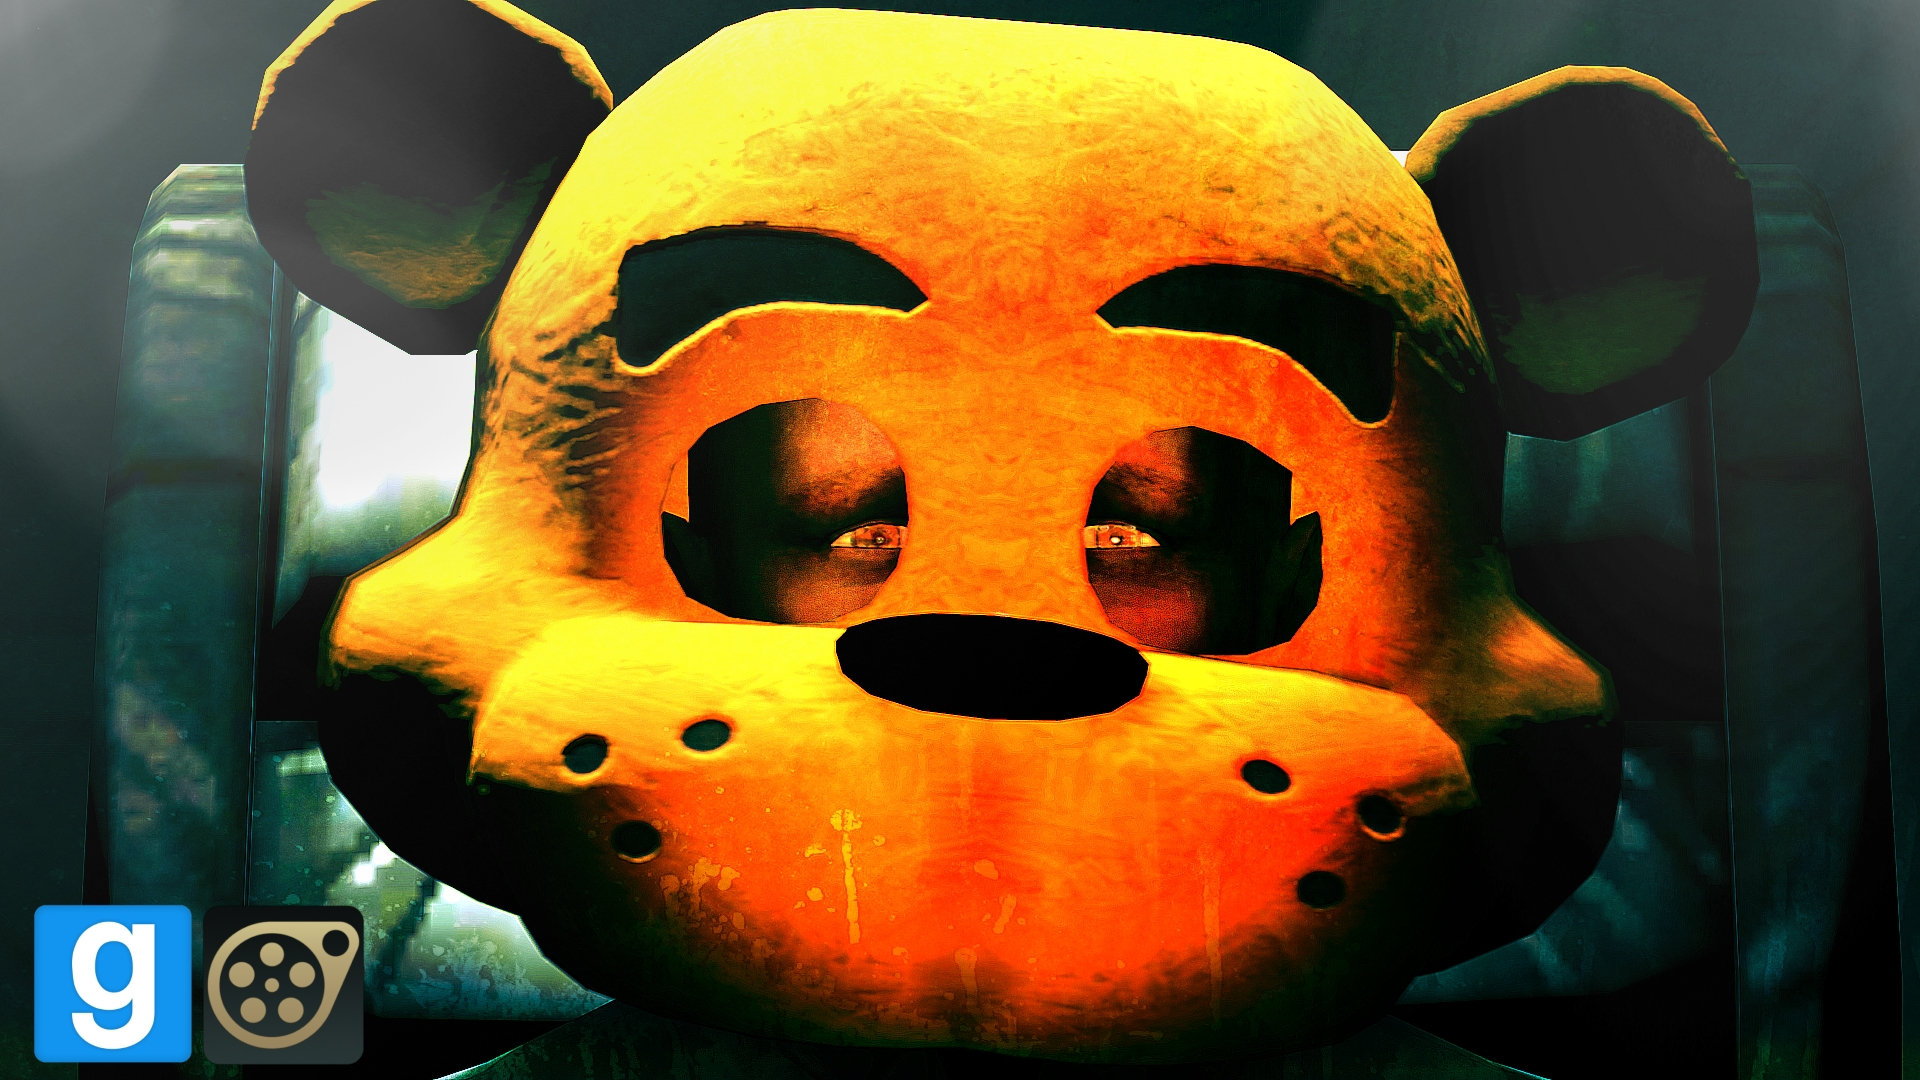 Fnaf 2 freddy fazbear mask prop dl by whiteskypony on deviantart